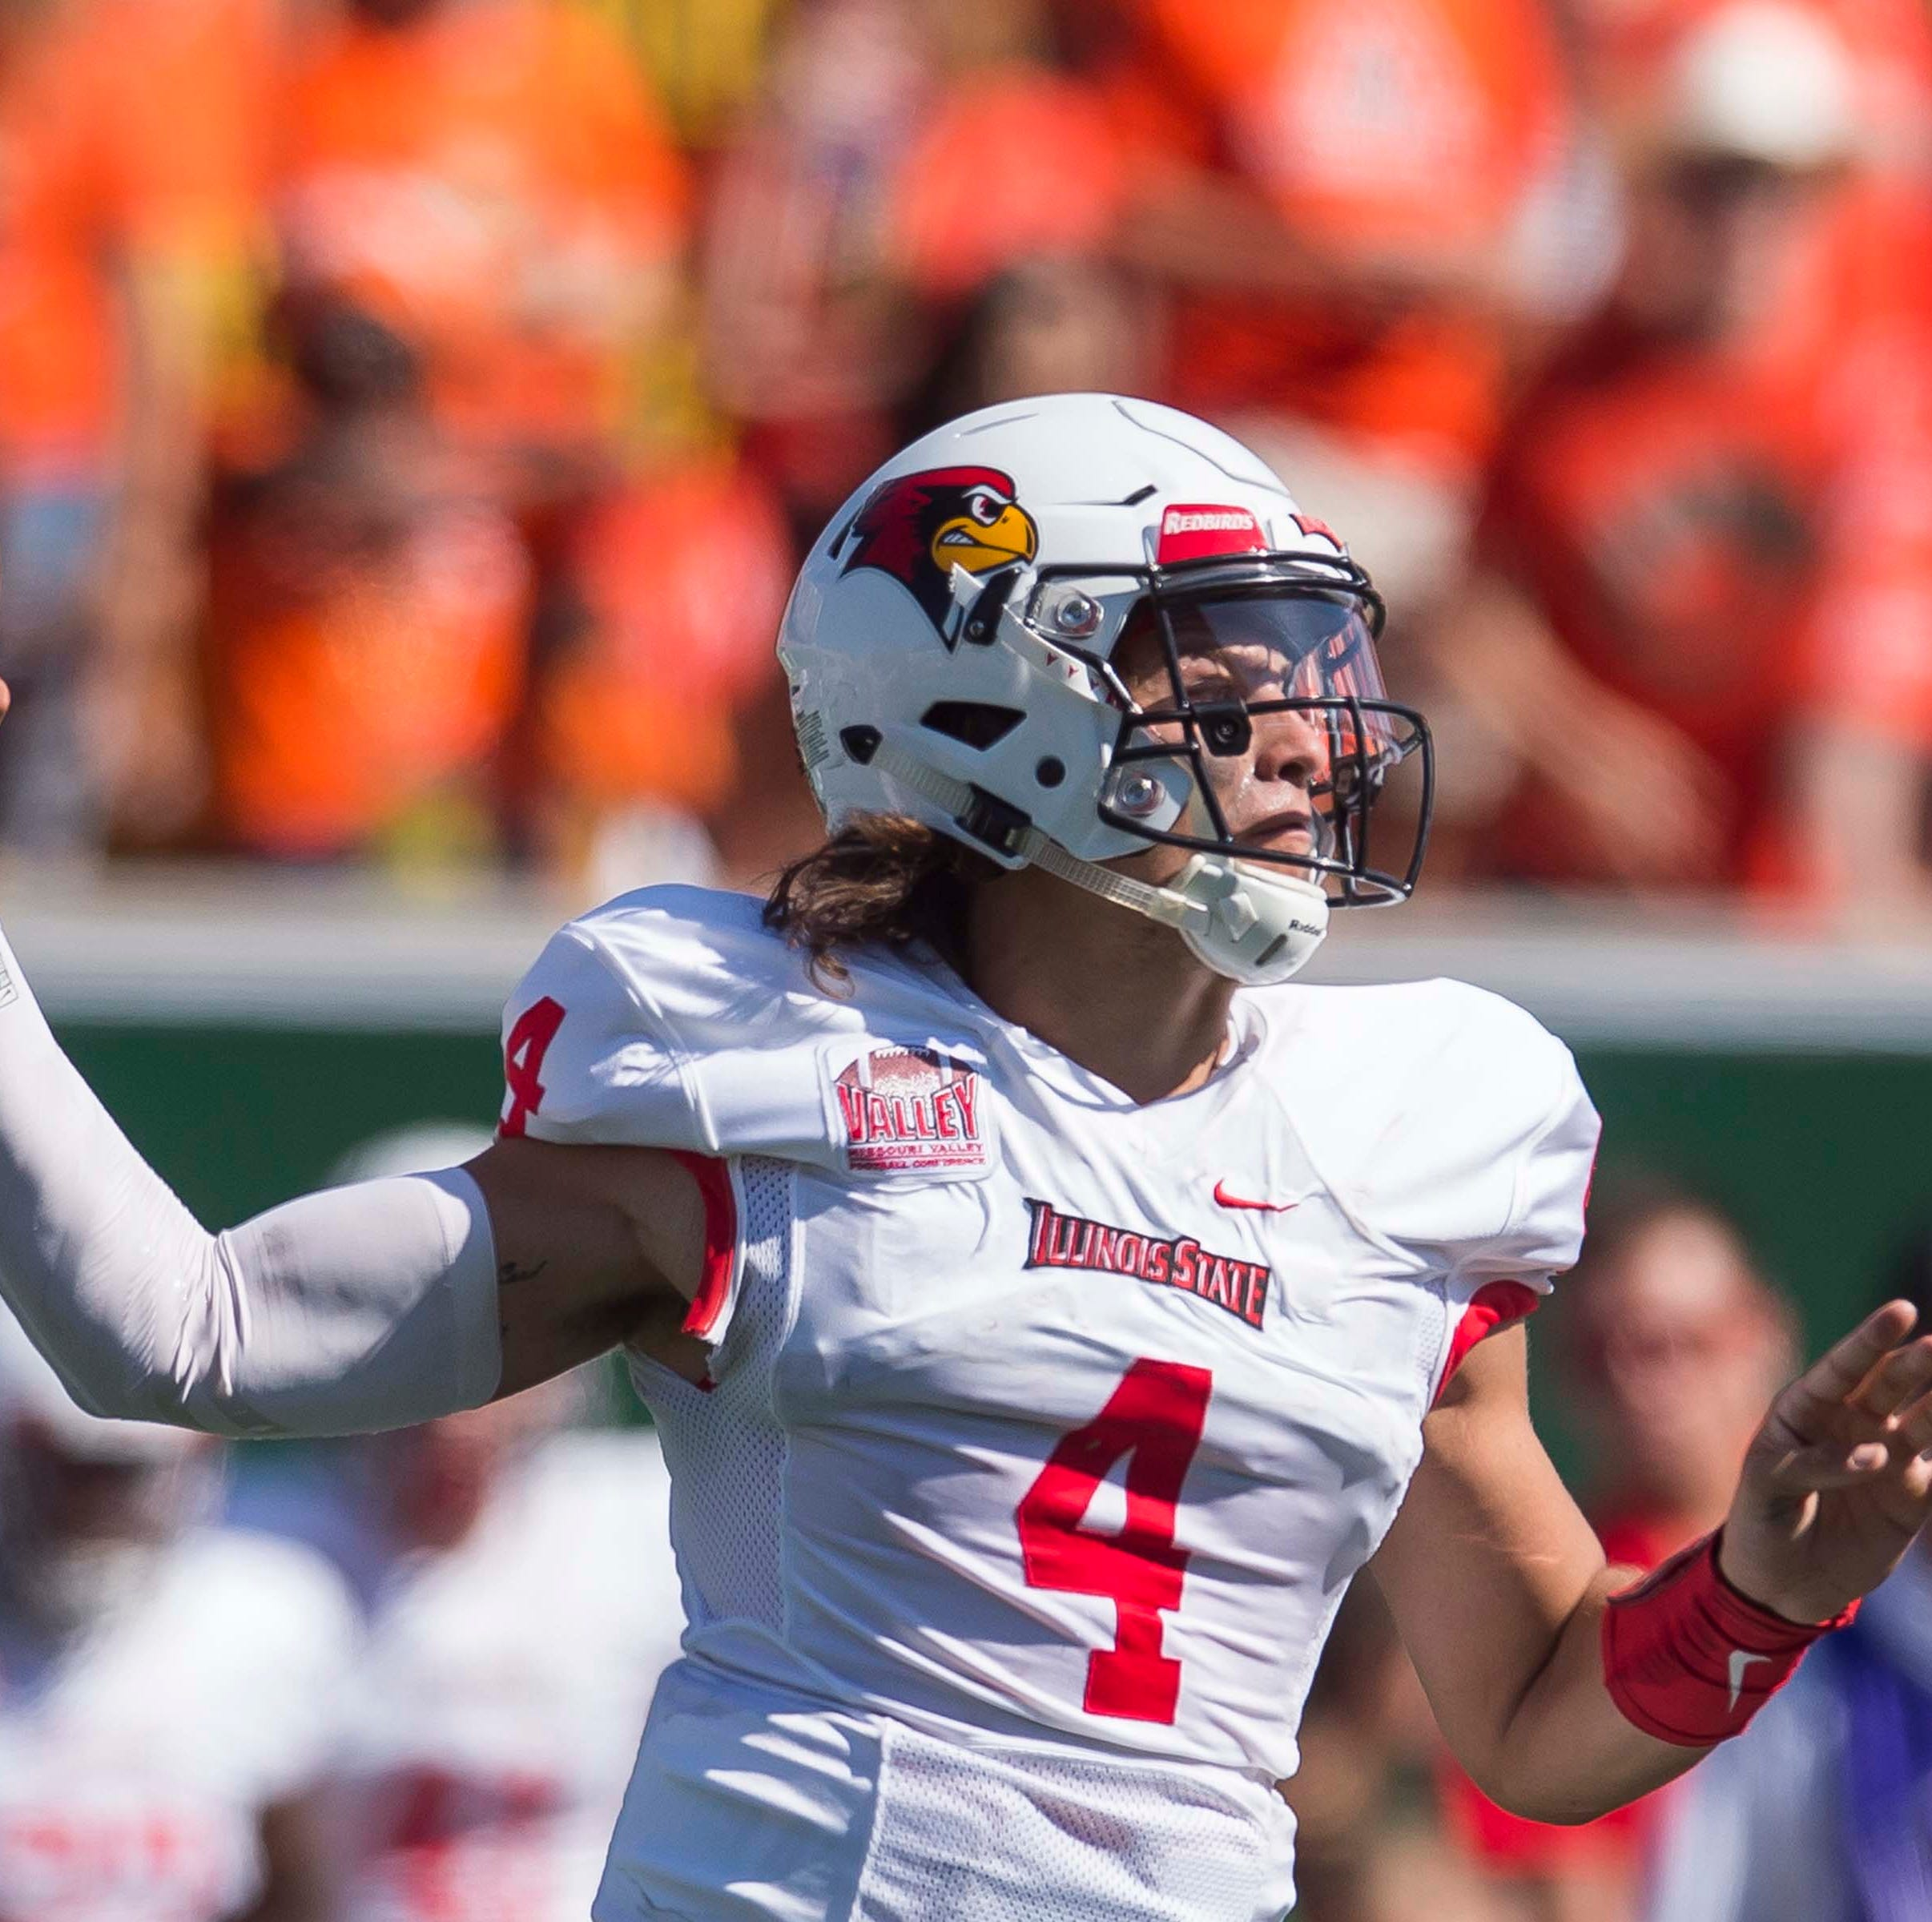 3 thoughts as FCS football team Illinois State takes down CSU football team